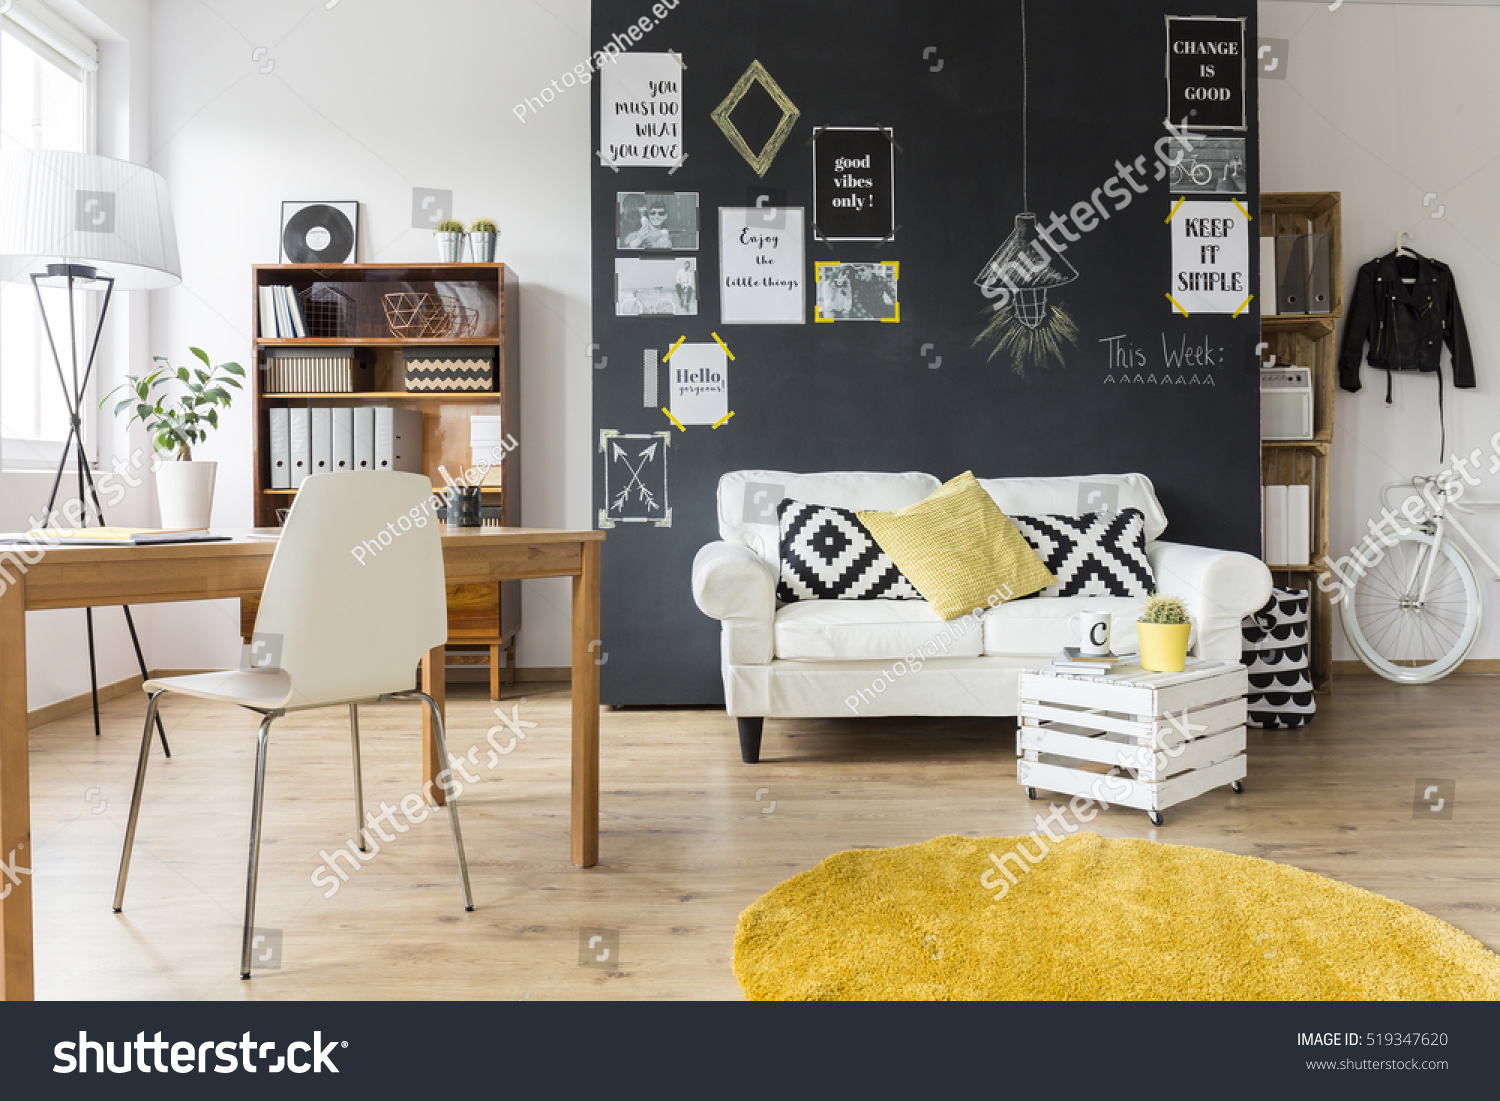 Creative living room with chalkboard wall, wooden desk and vintage furniture